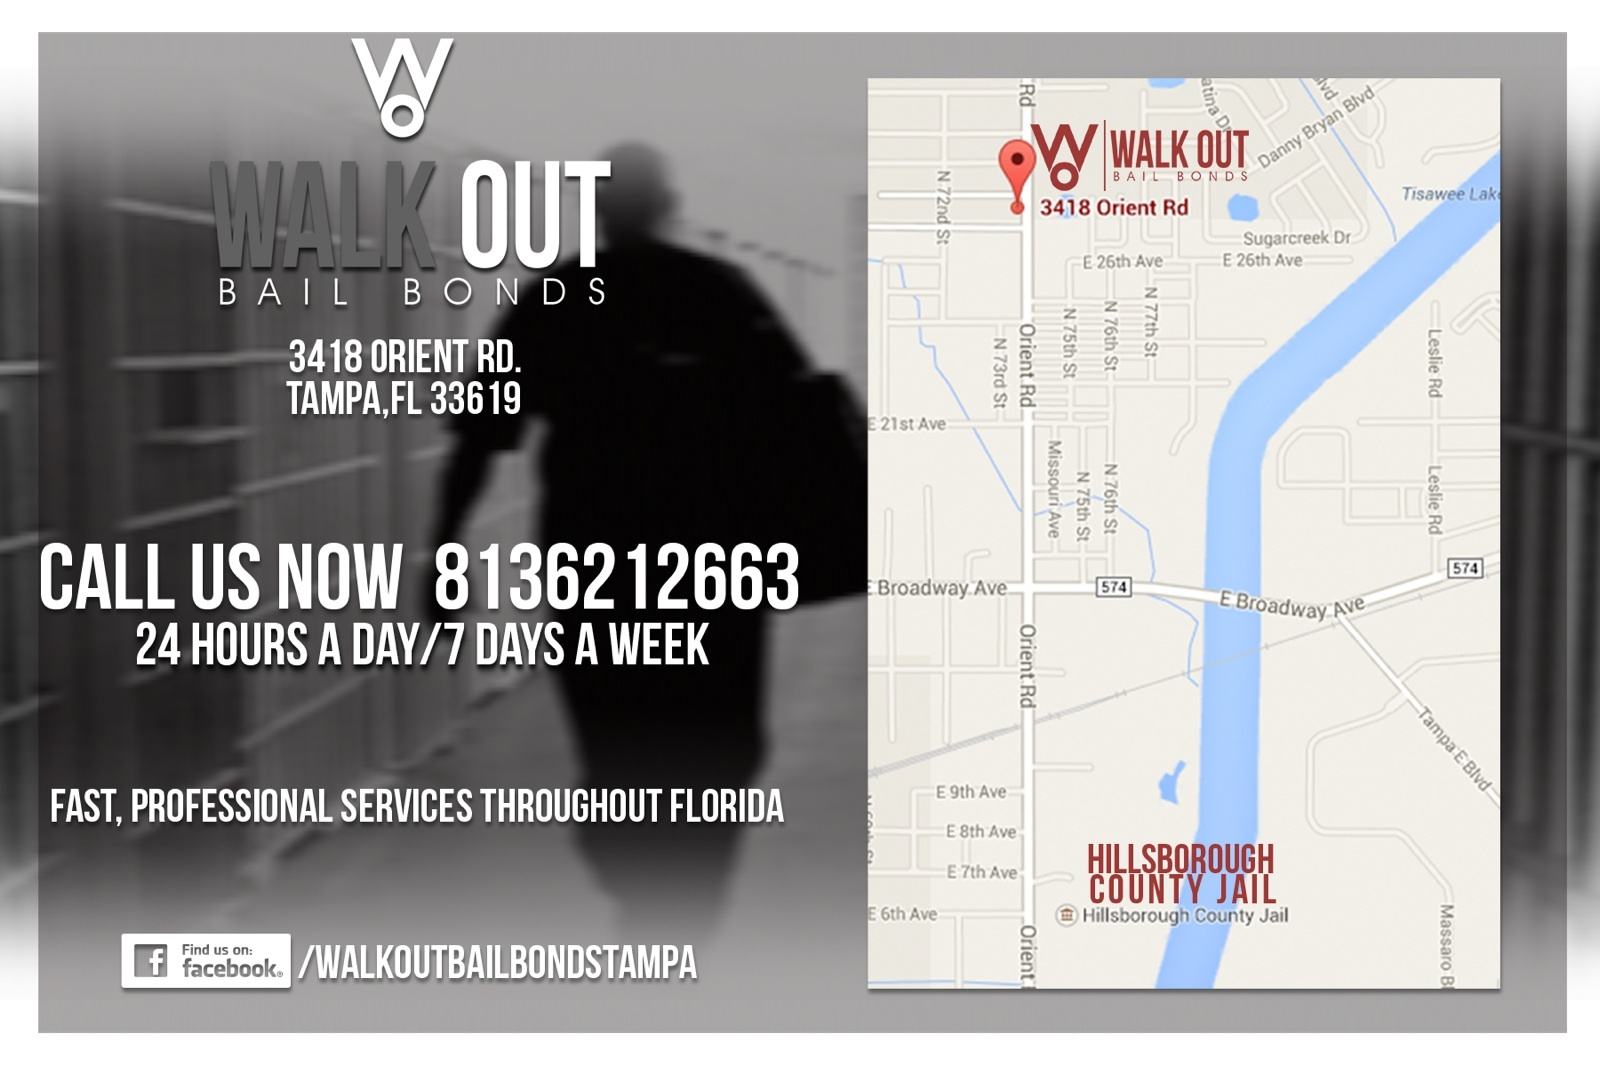 Walk Out Bail Bonds Location